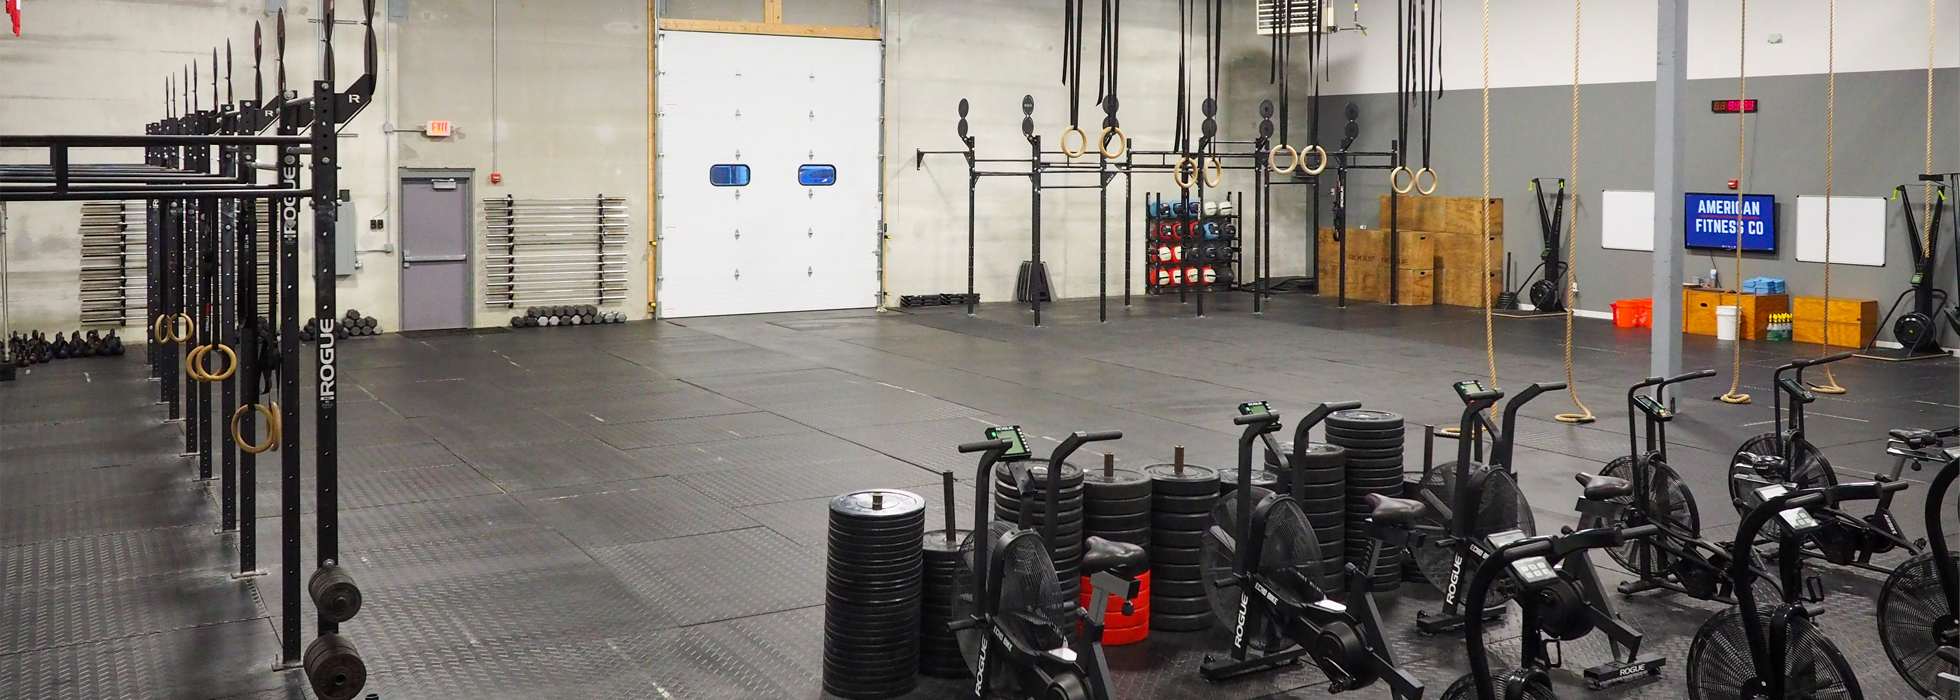 Why American Fitness Co Is Ranked One Of The Best Gyms in Indianapolis IN, Why American Fitness Co Is Ranked One Of The Best Gyms near Zionsville IN, Why American Fitness Co Is Ranked One Of The Best Gyms near Carmel IN, Why American Fitness Co Is Ranked One Of The Best Gyms near Whitestown IN